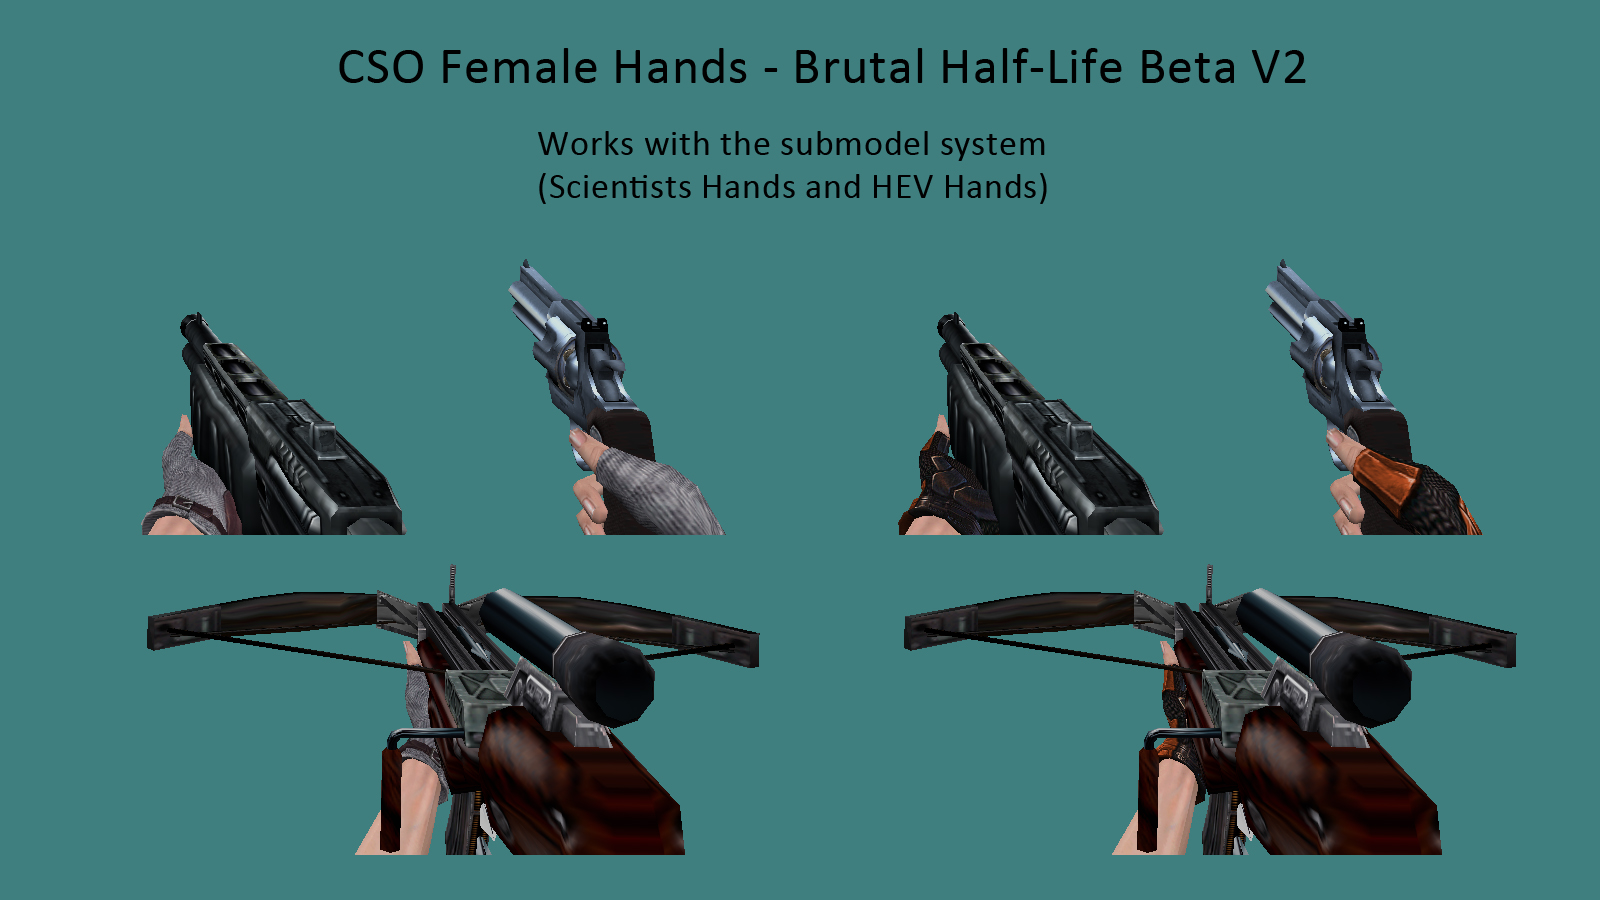 BHL Beta V2 Weapons - CSO Female Hands addon - Brutal Half-Life mod